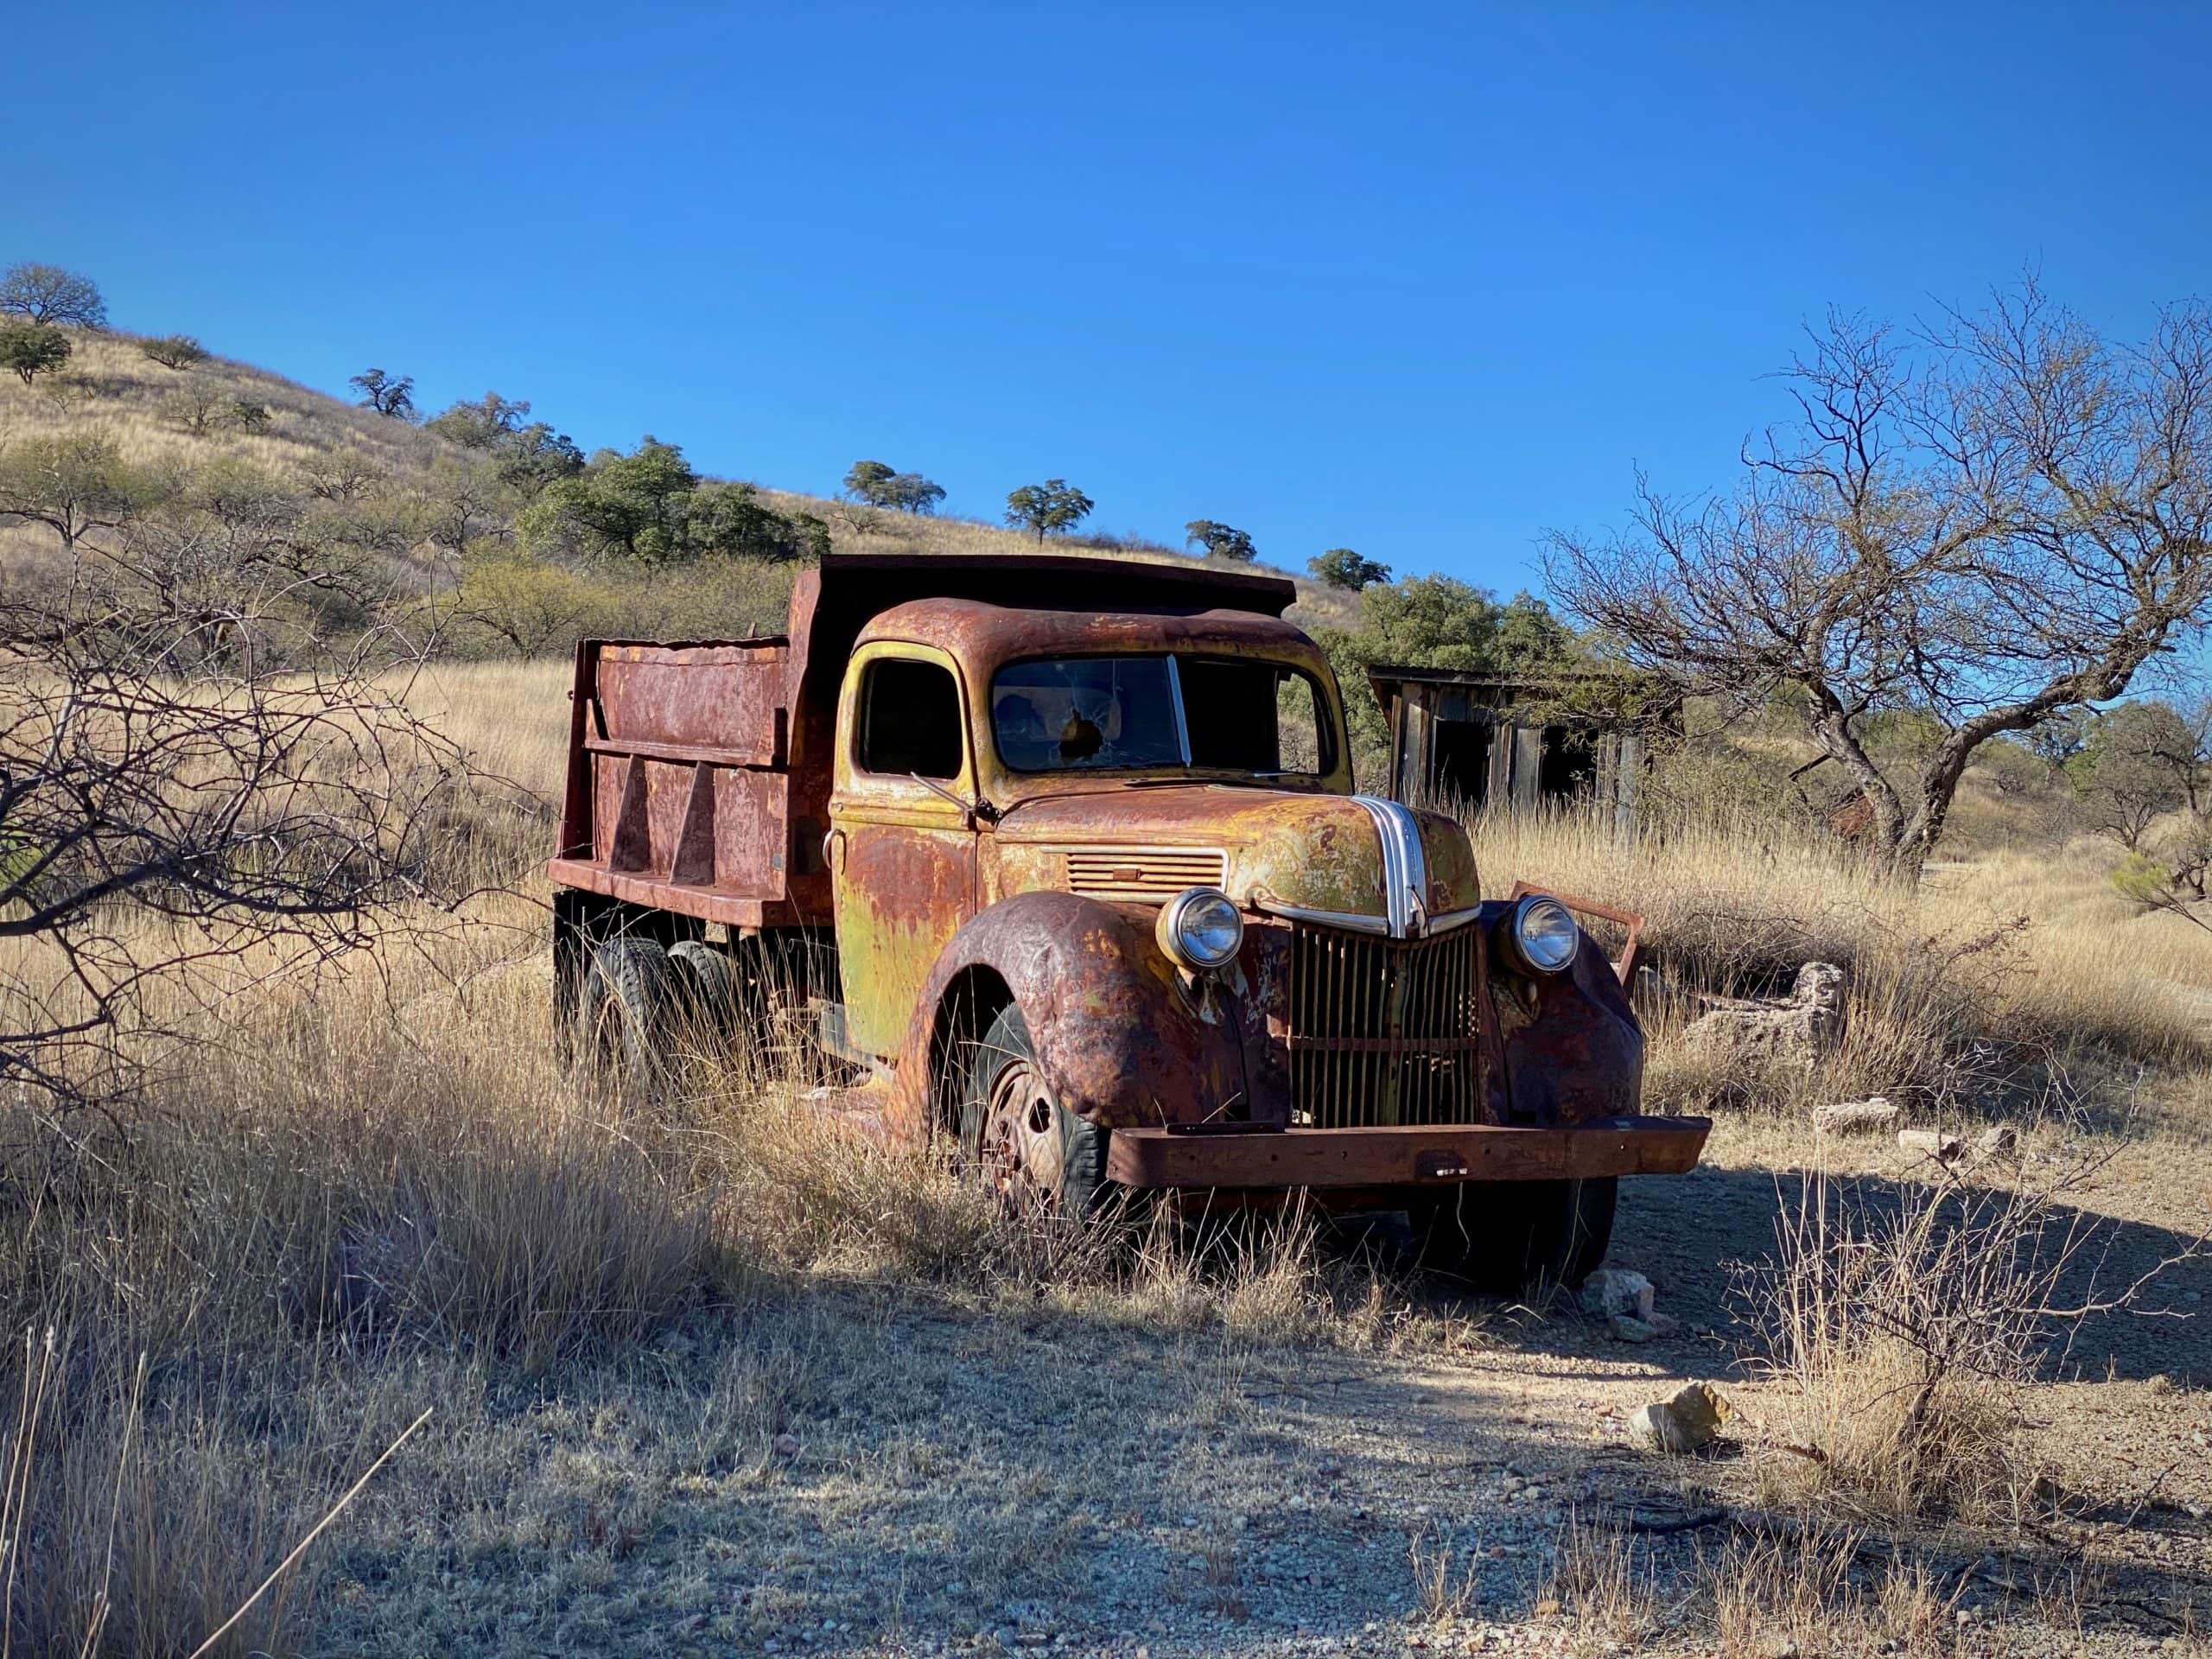 Old mining truck in the ghost town of Ruby south of Arivaca, Arizona.